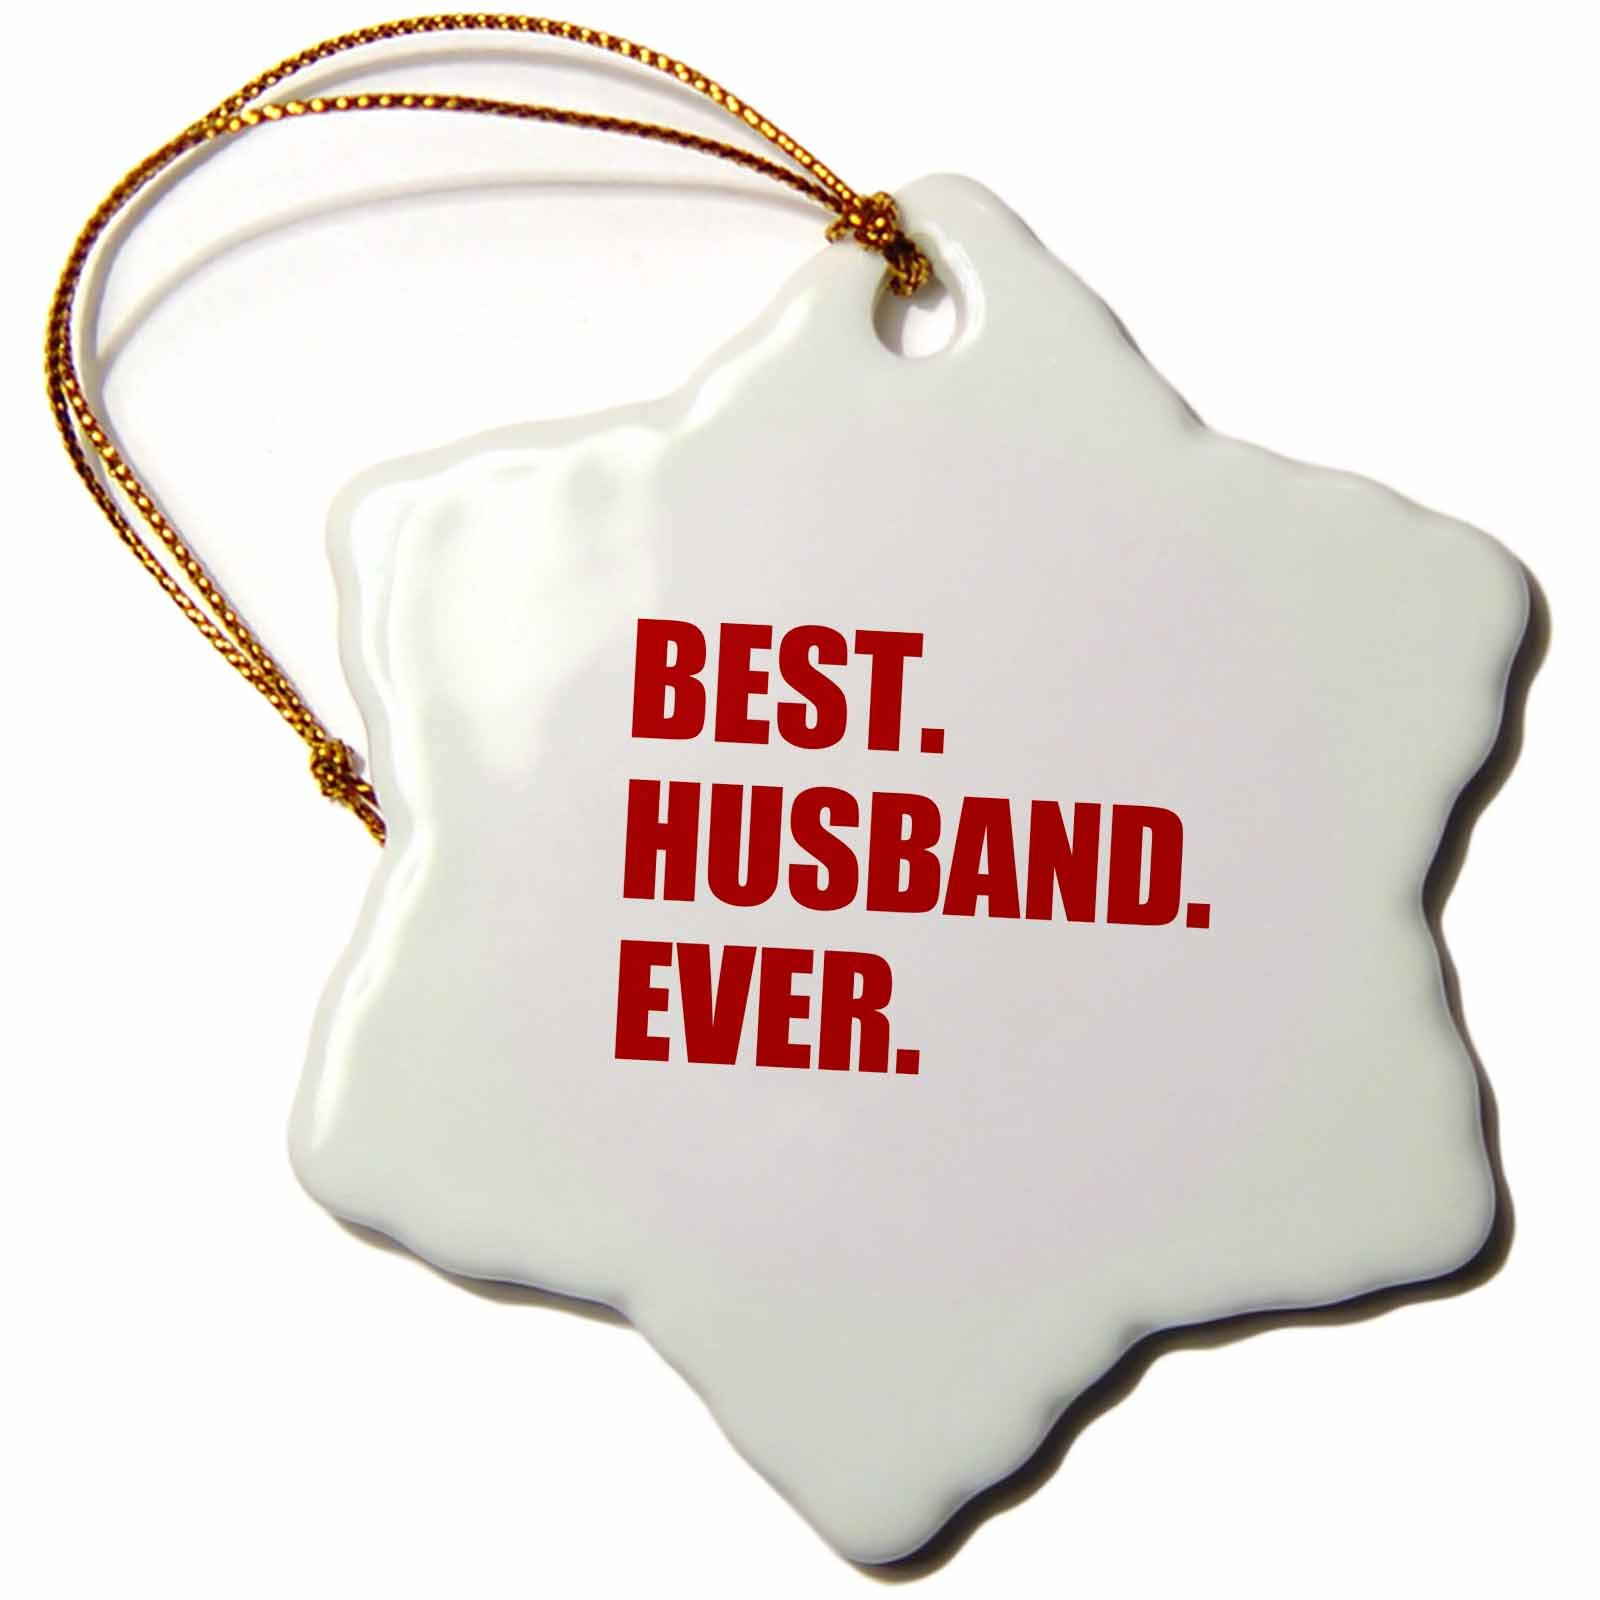 The Holiday Aisle Best Husband Ever Bold Text Married Bliss Fun Gifts For Him Snowflake Holiday Shaped Ornament Wayfair